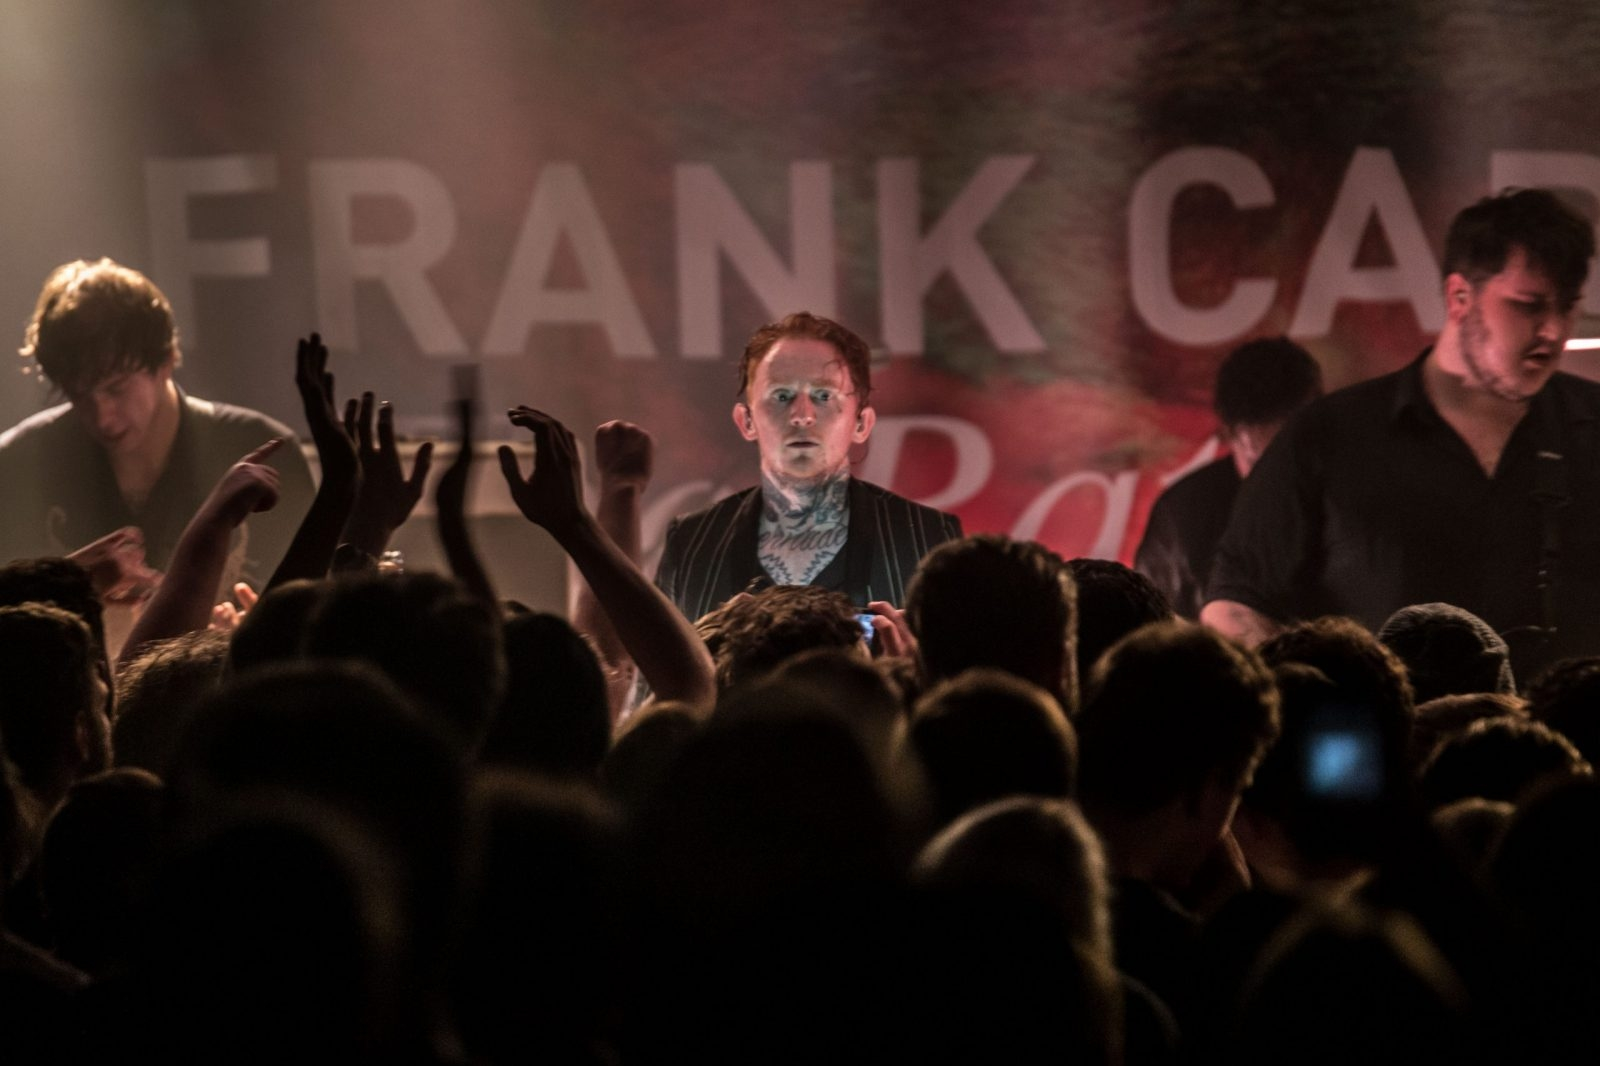 Frank Carter & The Rattlesnakes @ Oh Yeah Music Centre 14